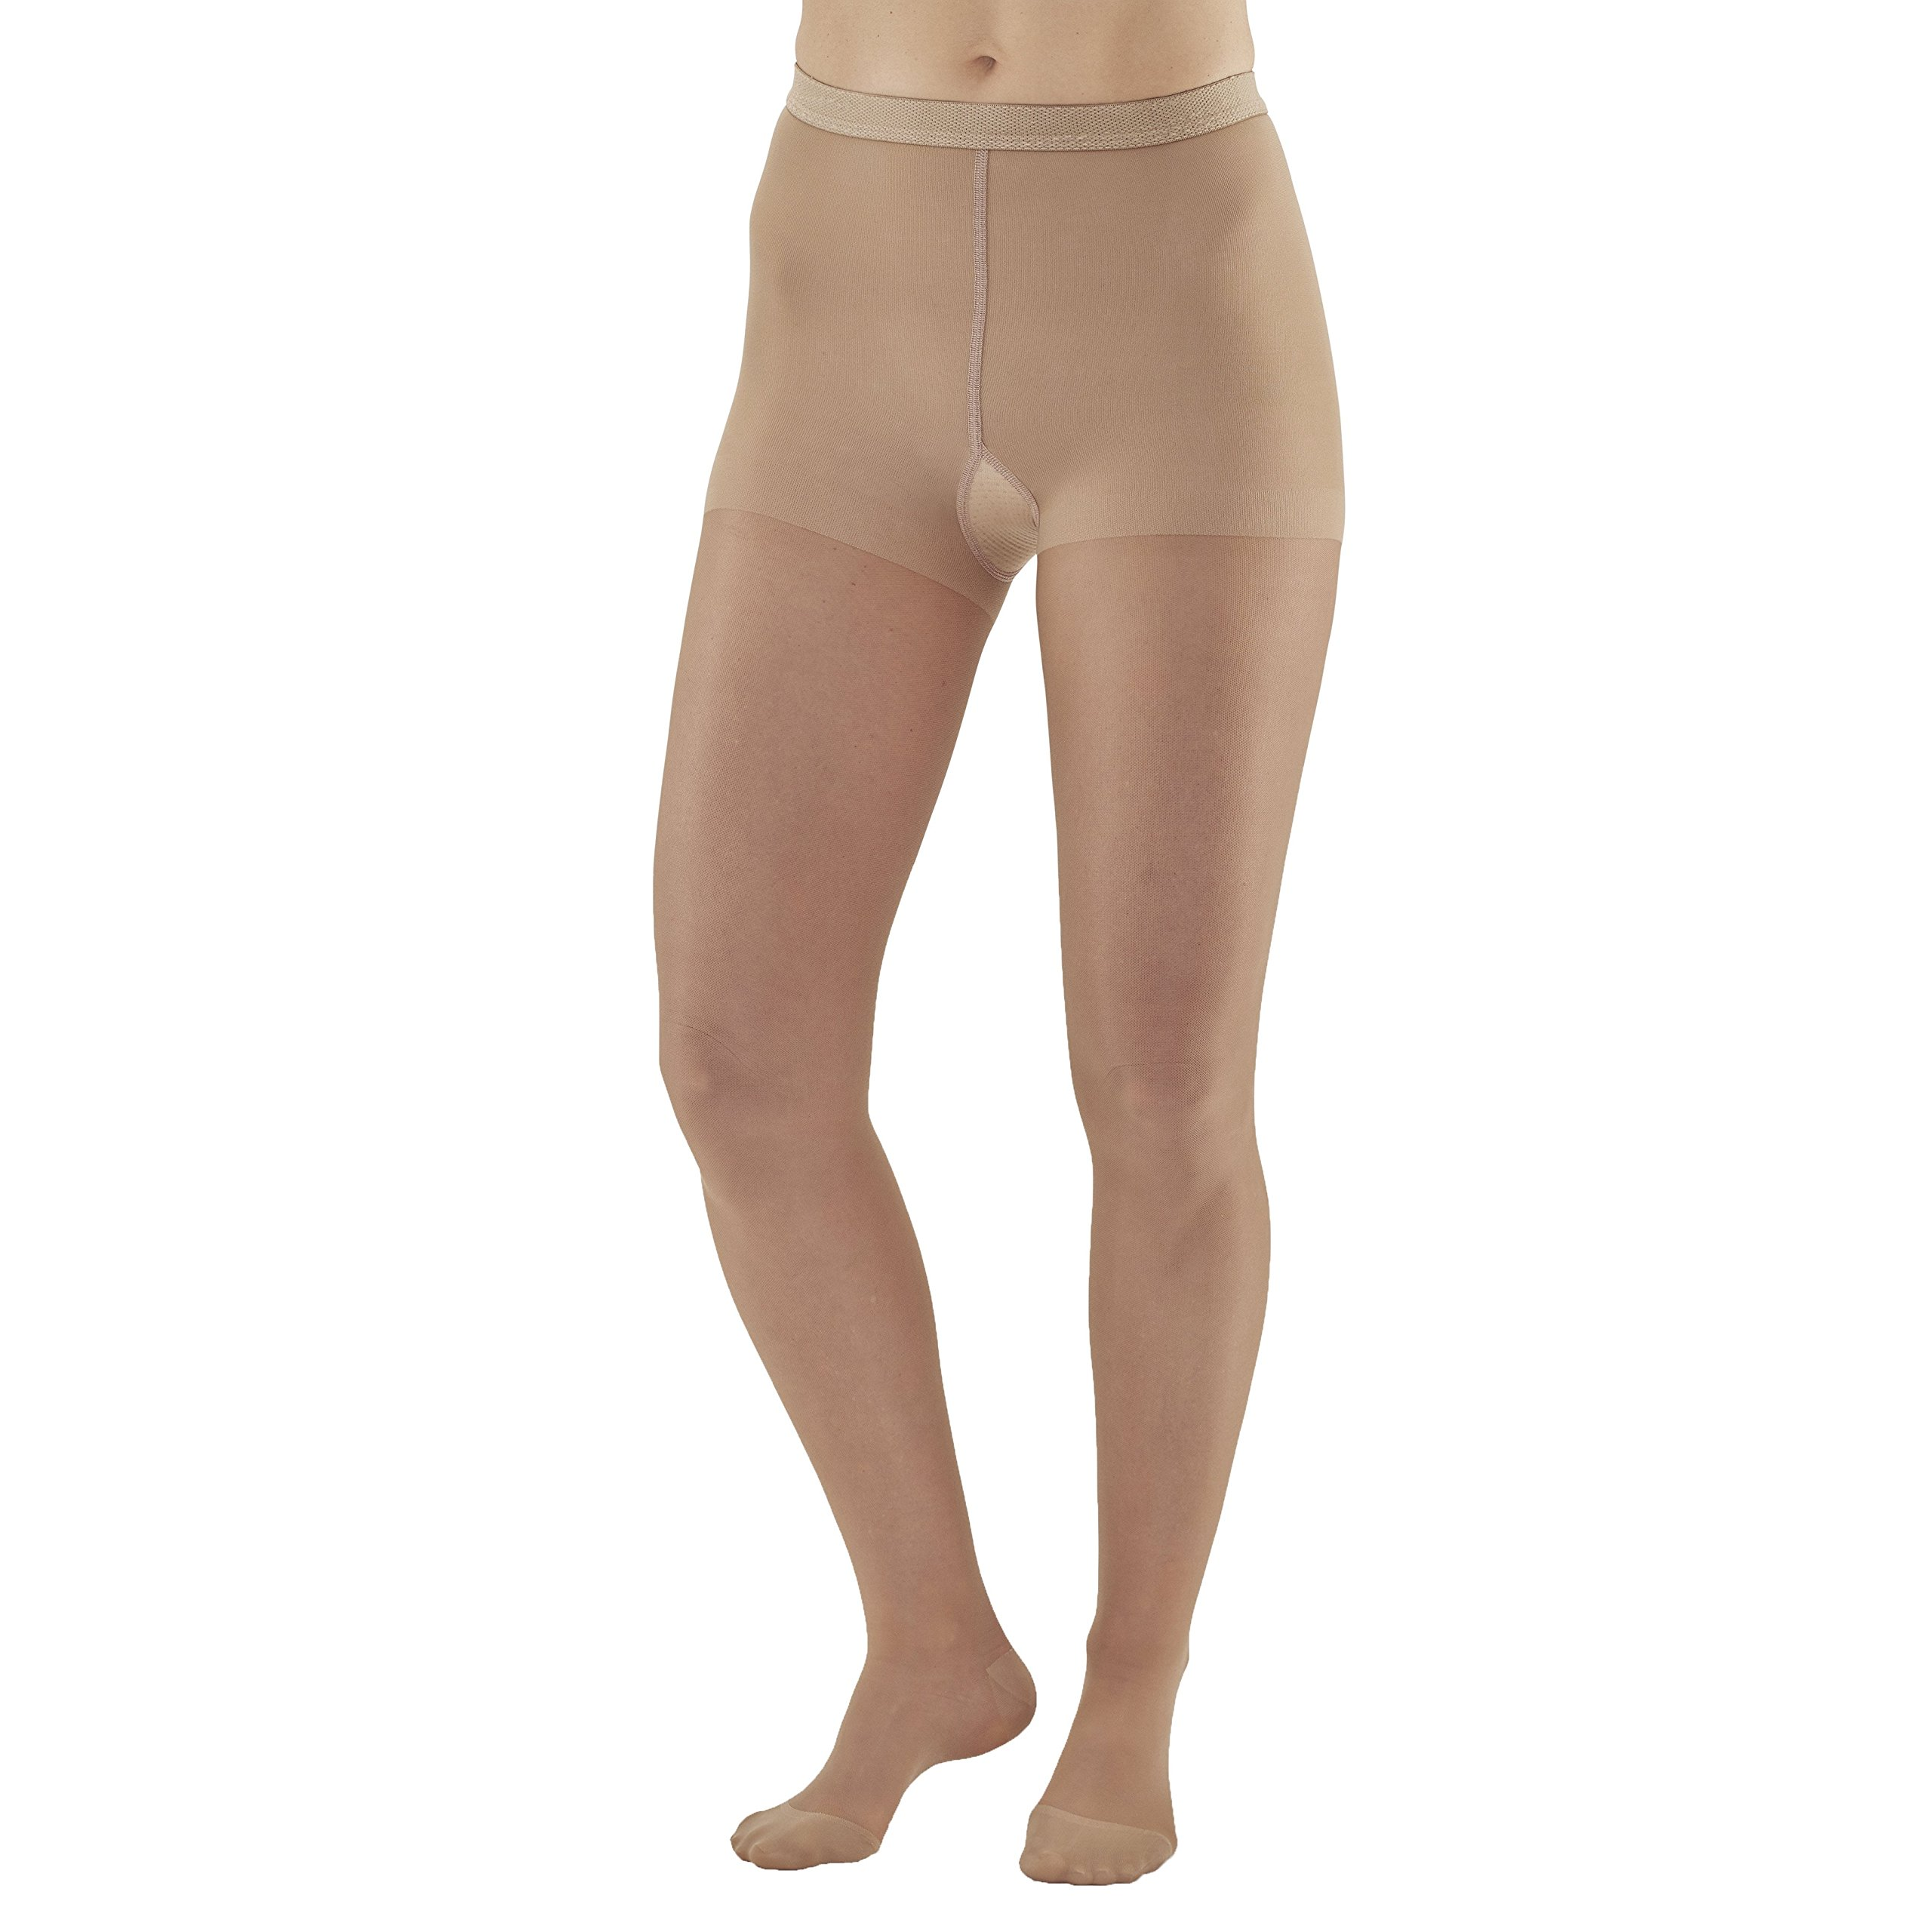 Ames Walker Women's AW Style 15 Sheer Support Closed Toe Compression Pantyhose - 15-20 mmHg Light Beige Large 15-L-LT BEIGE Nylon/Spandex